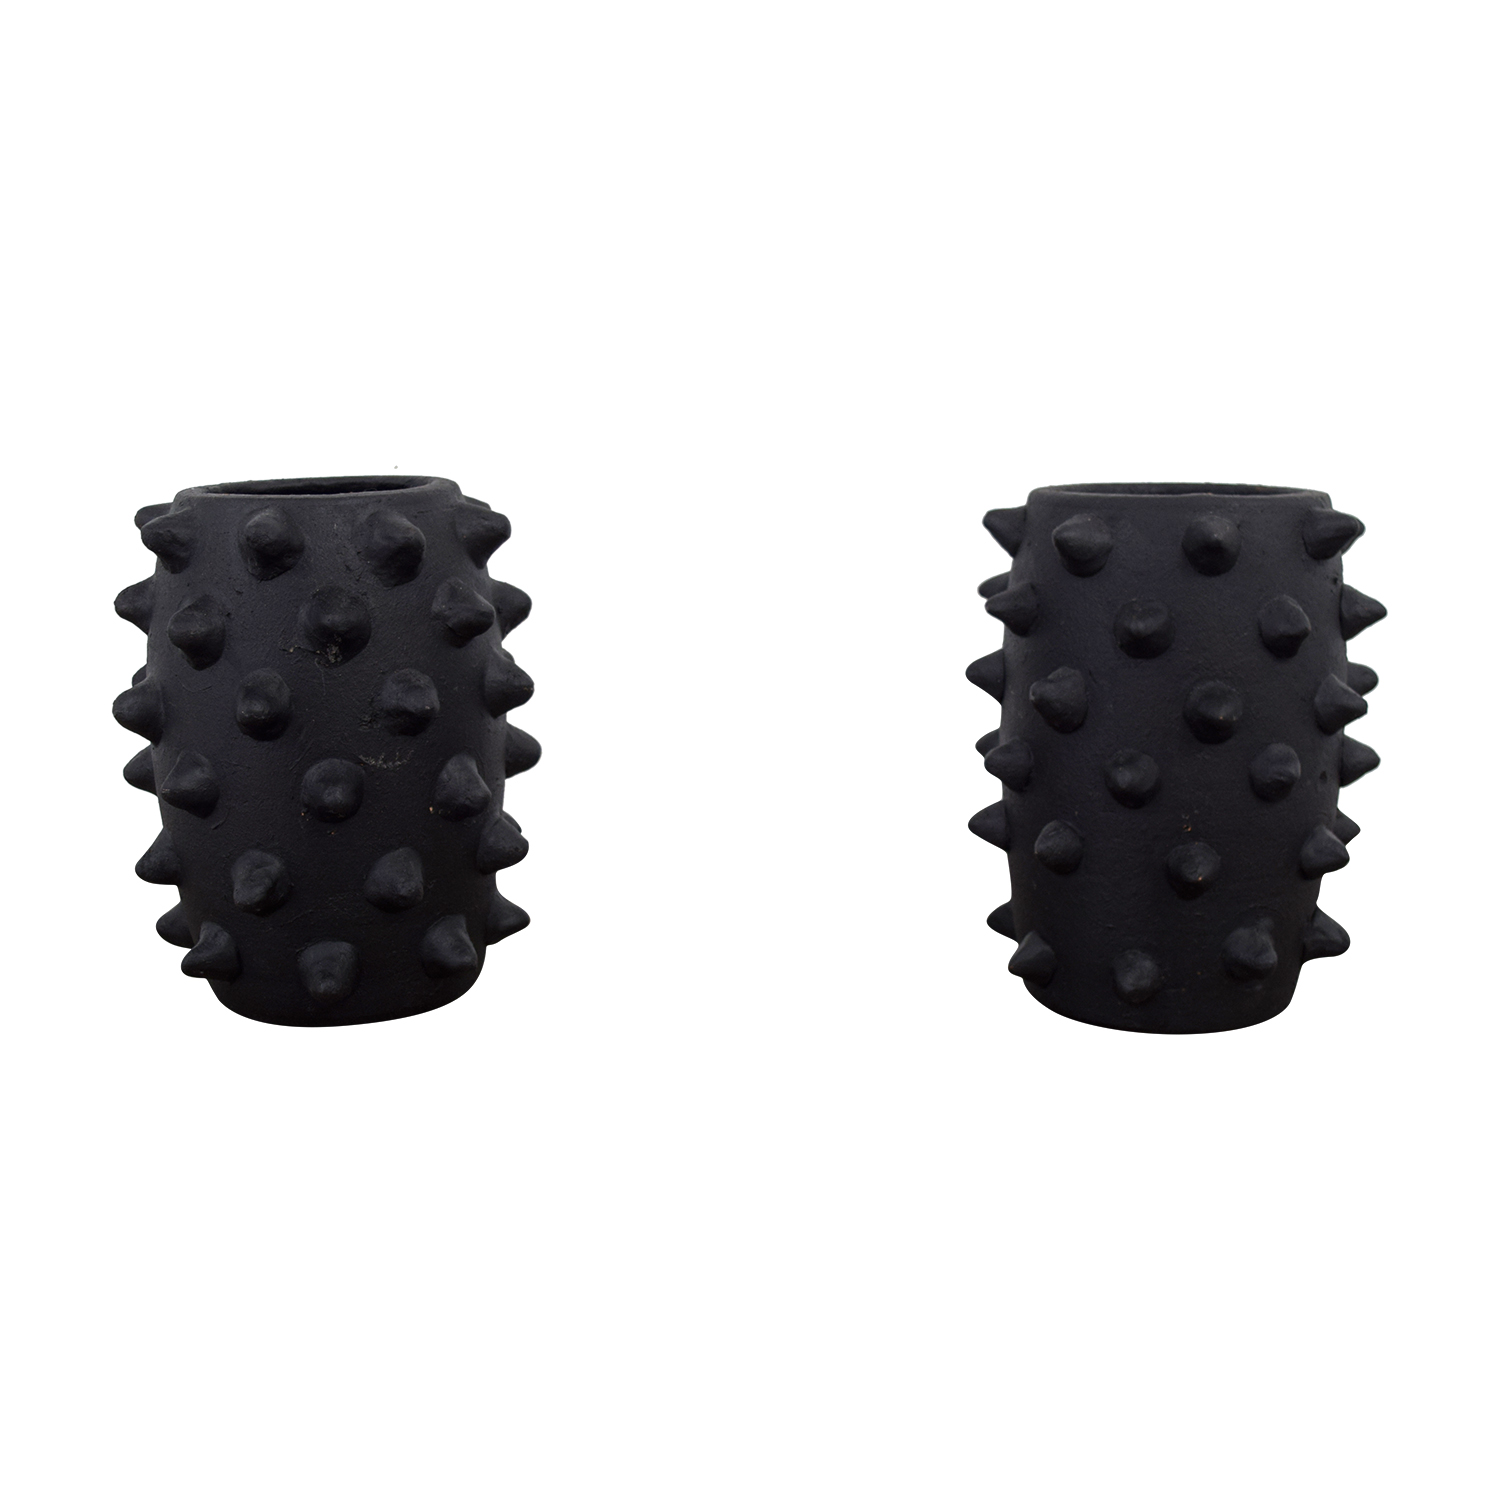 A & G Merch A & G Merch Black Spiked Vases price